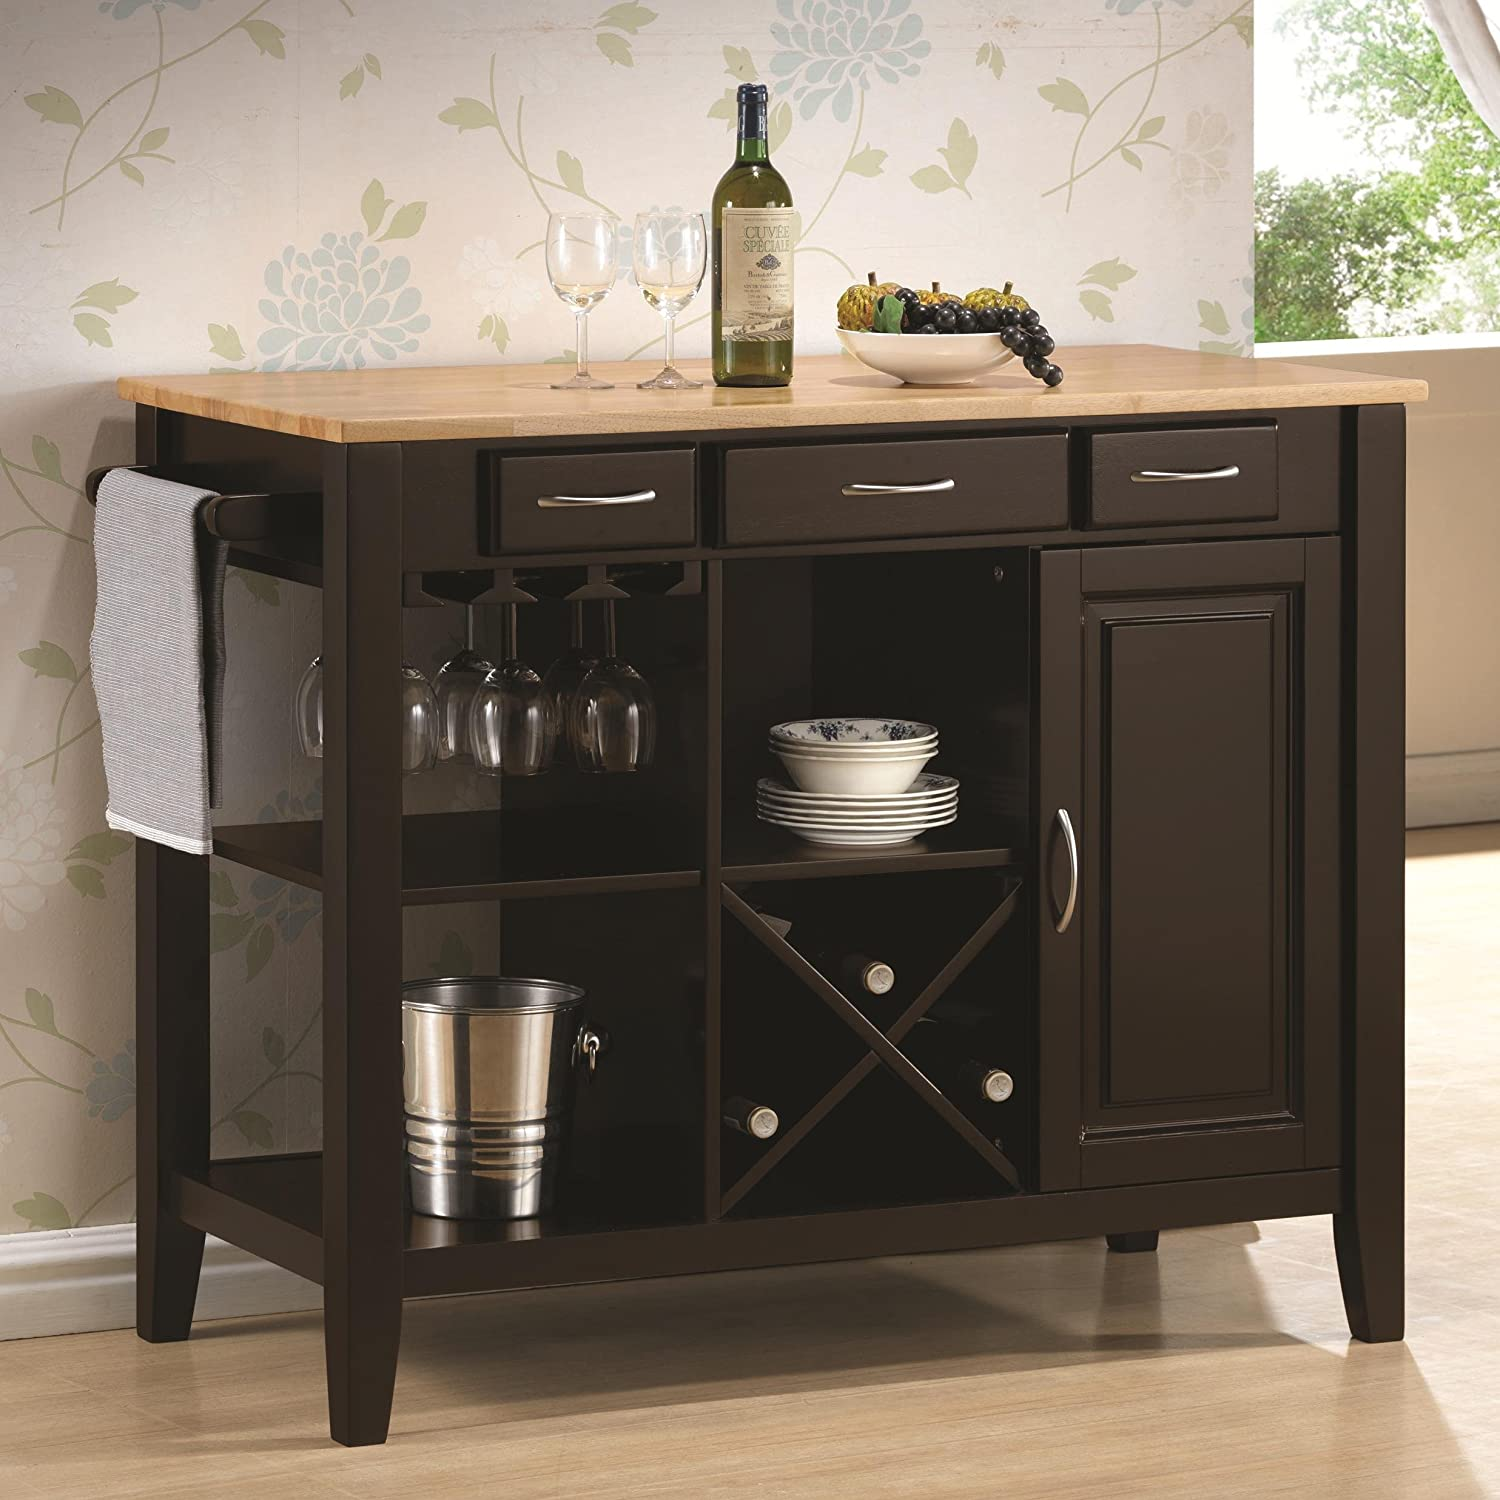 Amazon Kitchen Island with Solid Wood Butcher Block Surface